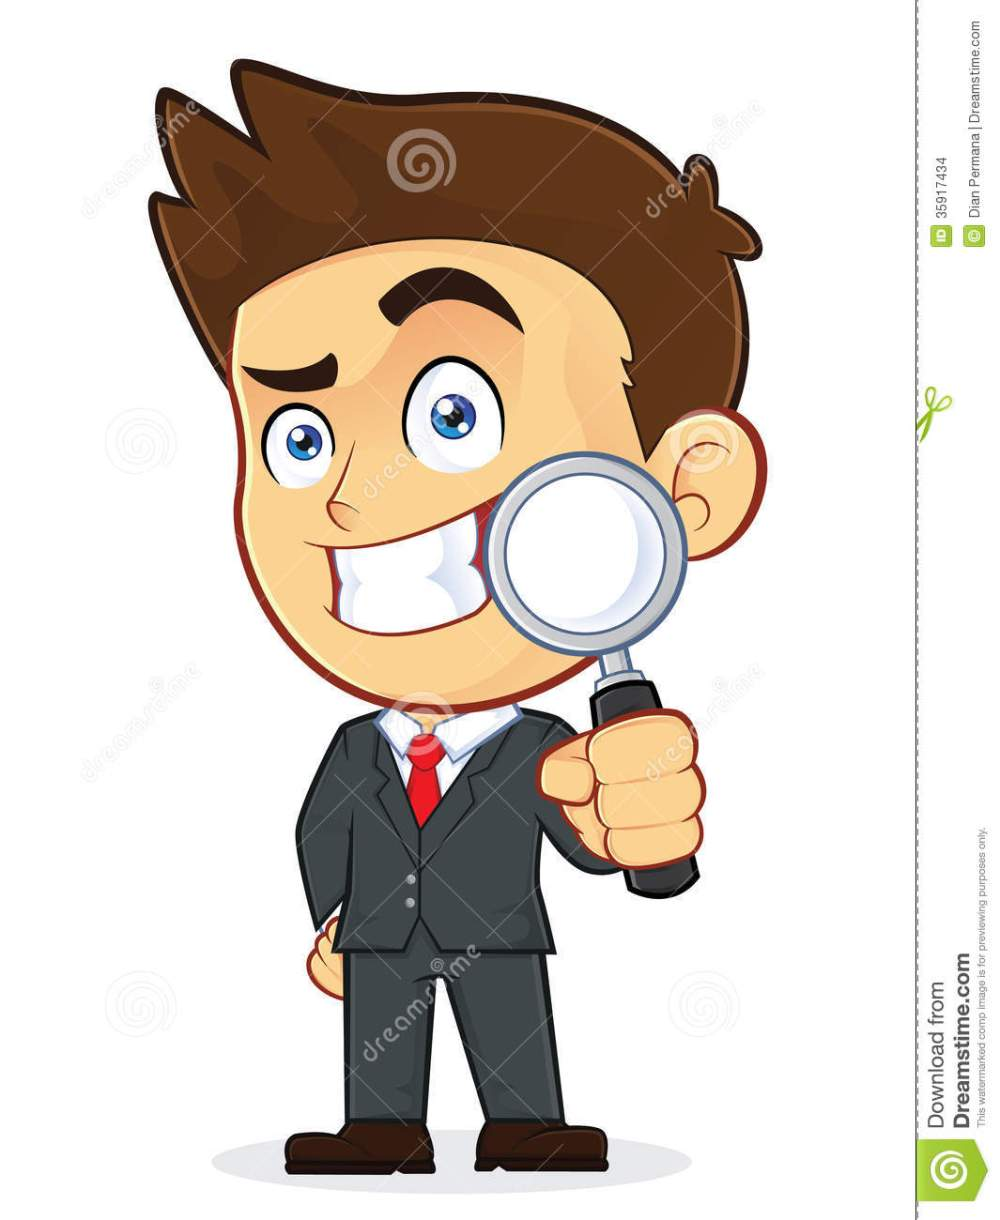 medium resolution of clipart picture of a male businessman cartoon character holding a magnifying glass